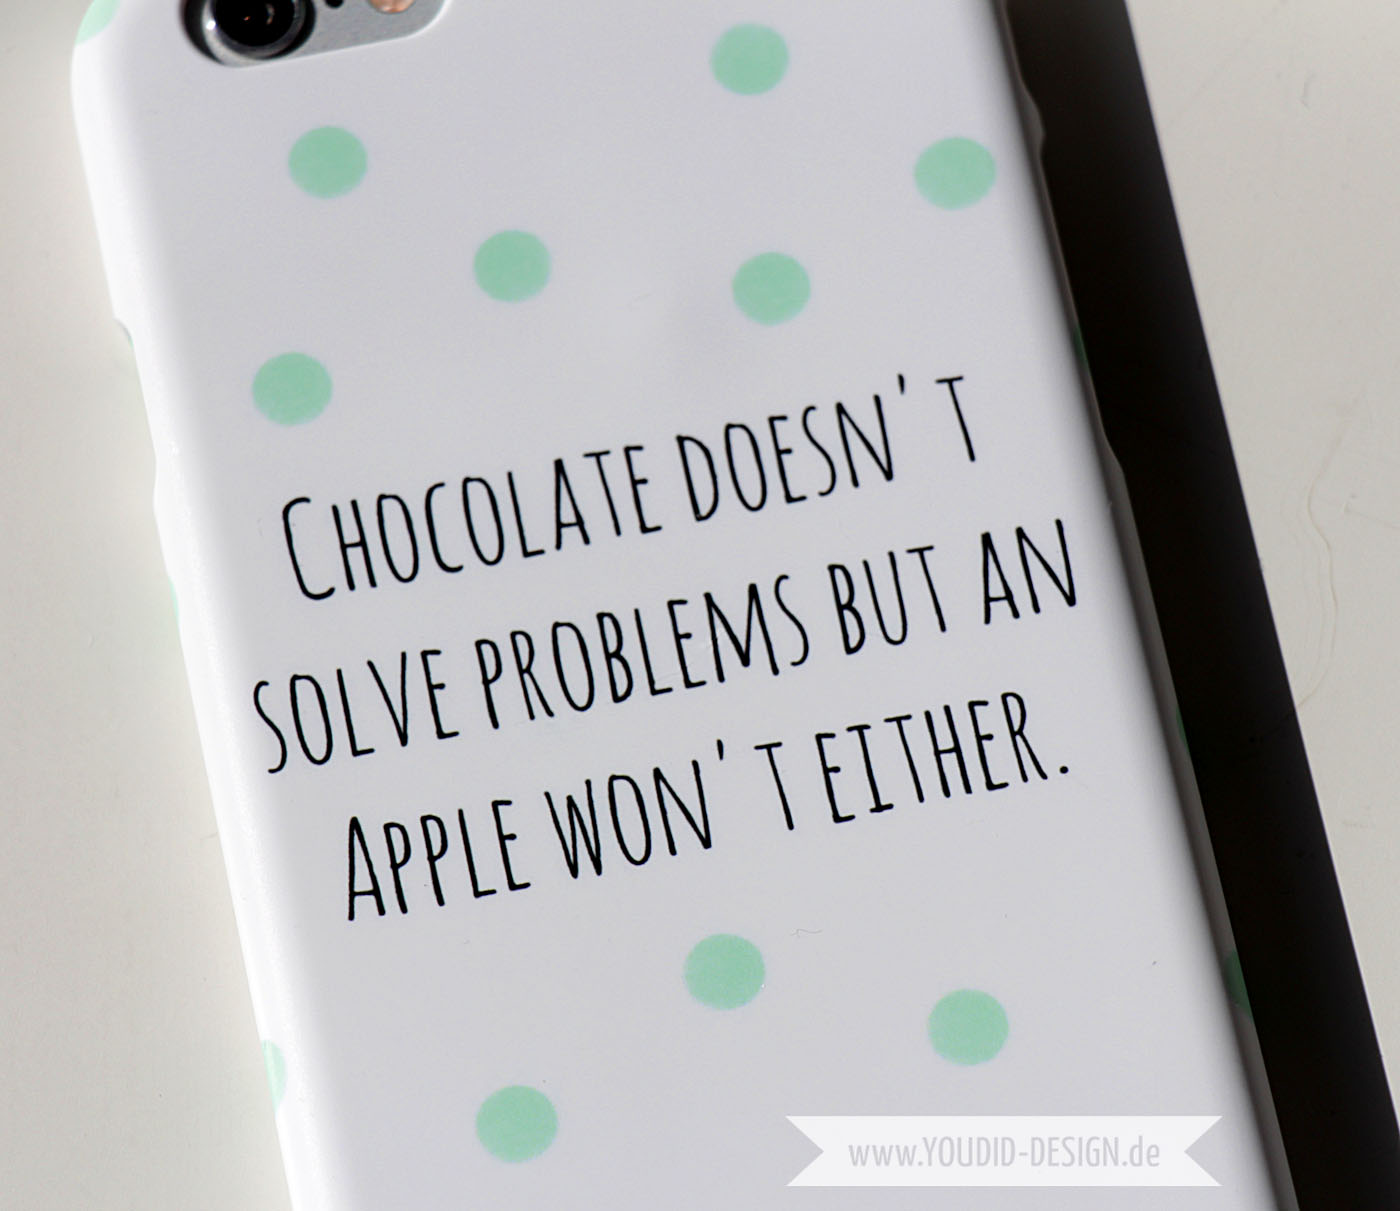 Chocolate doesnt solve problems but an apple wont either | www.youdid-design.de